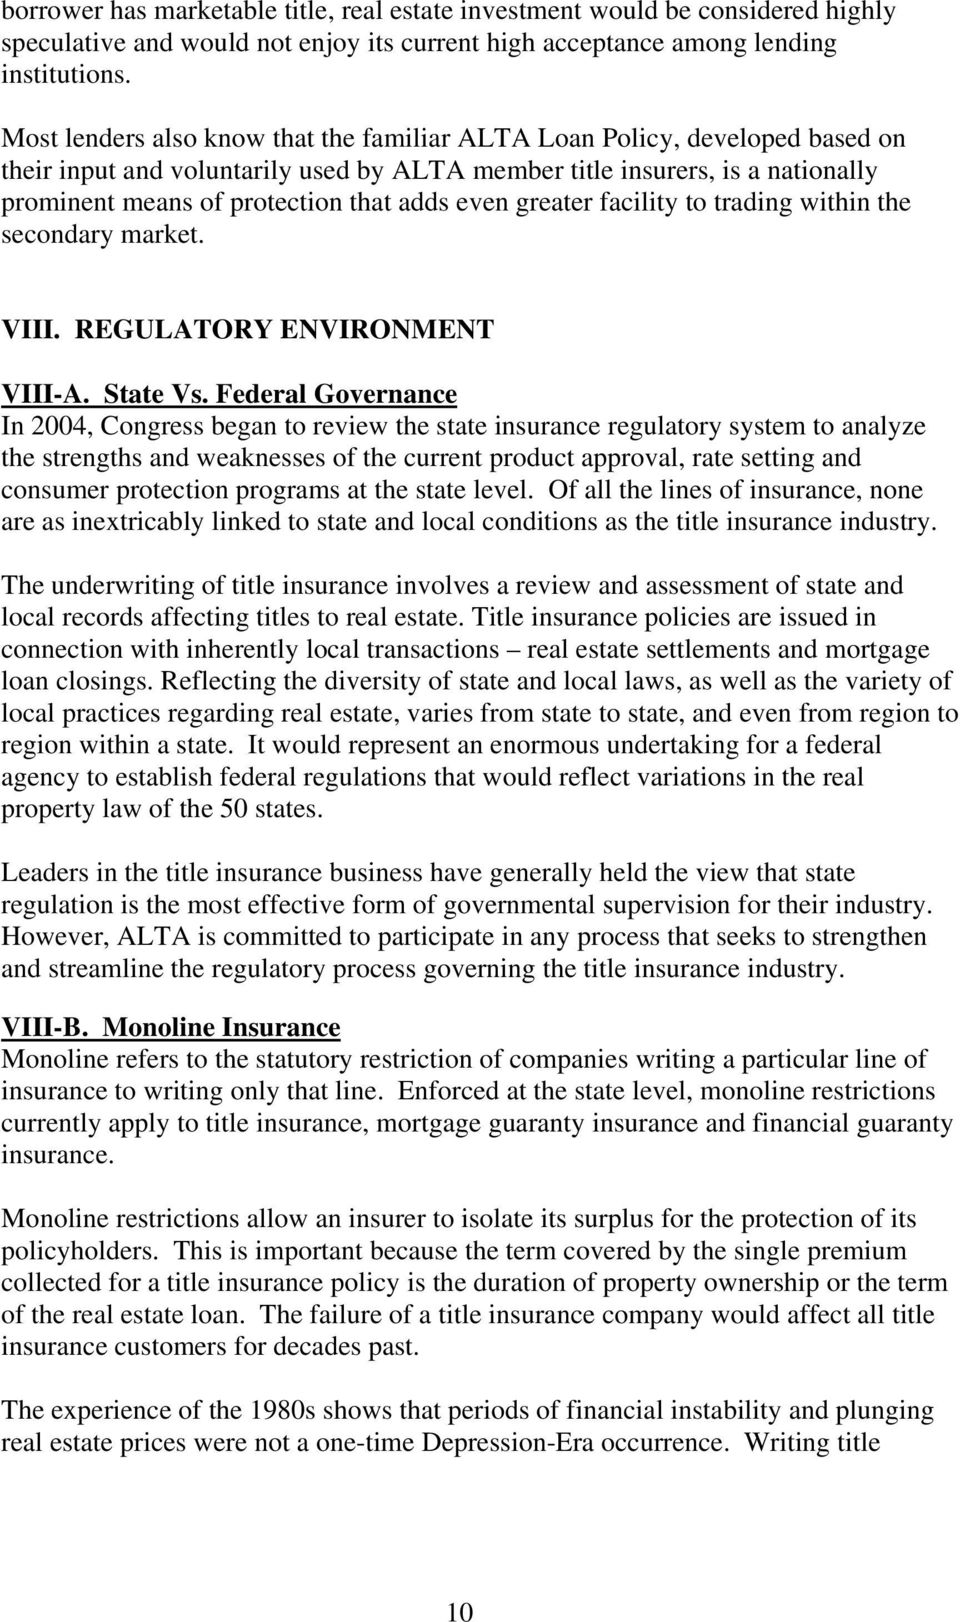 even greater facility to trading within the secondary market. VIII. REGULATORY ENVIRONMENT VIII-A. State Vs.